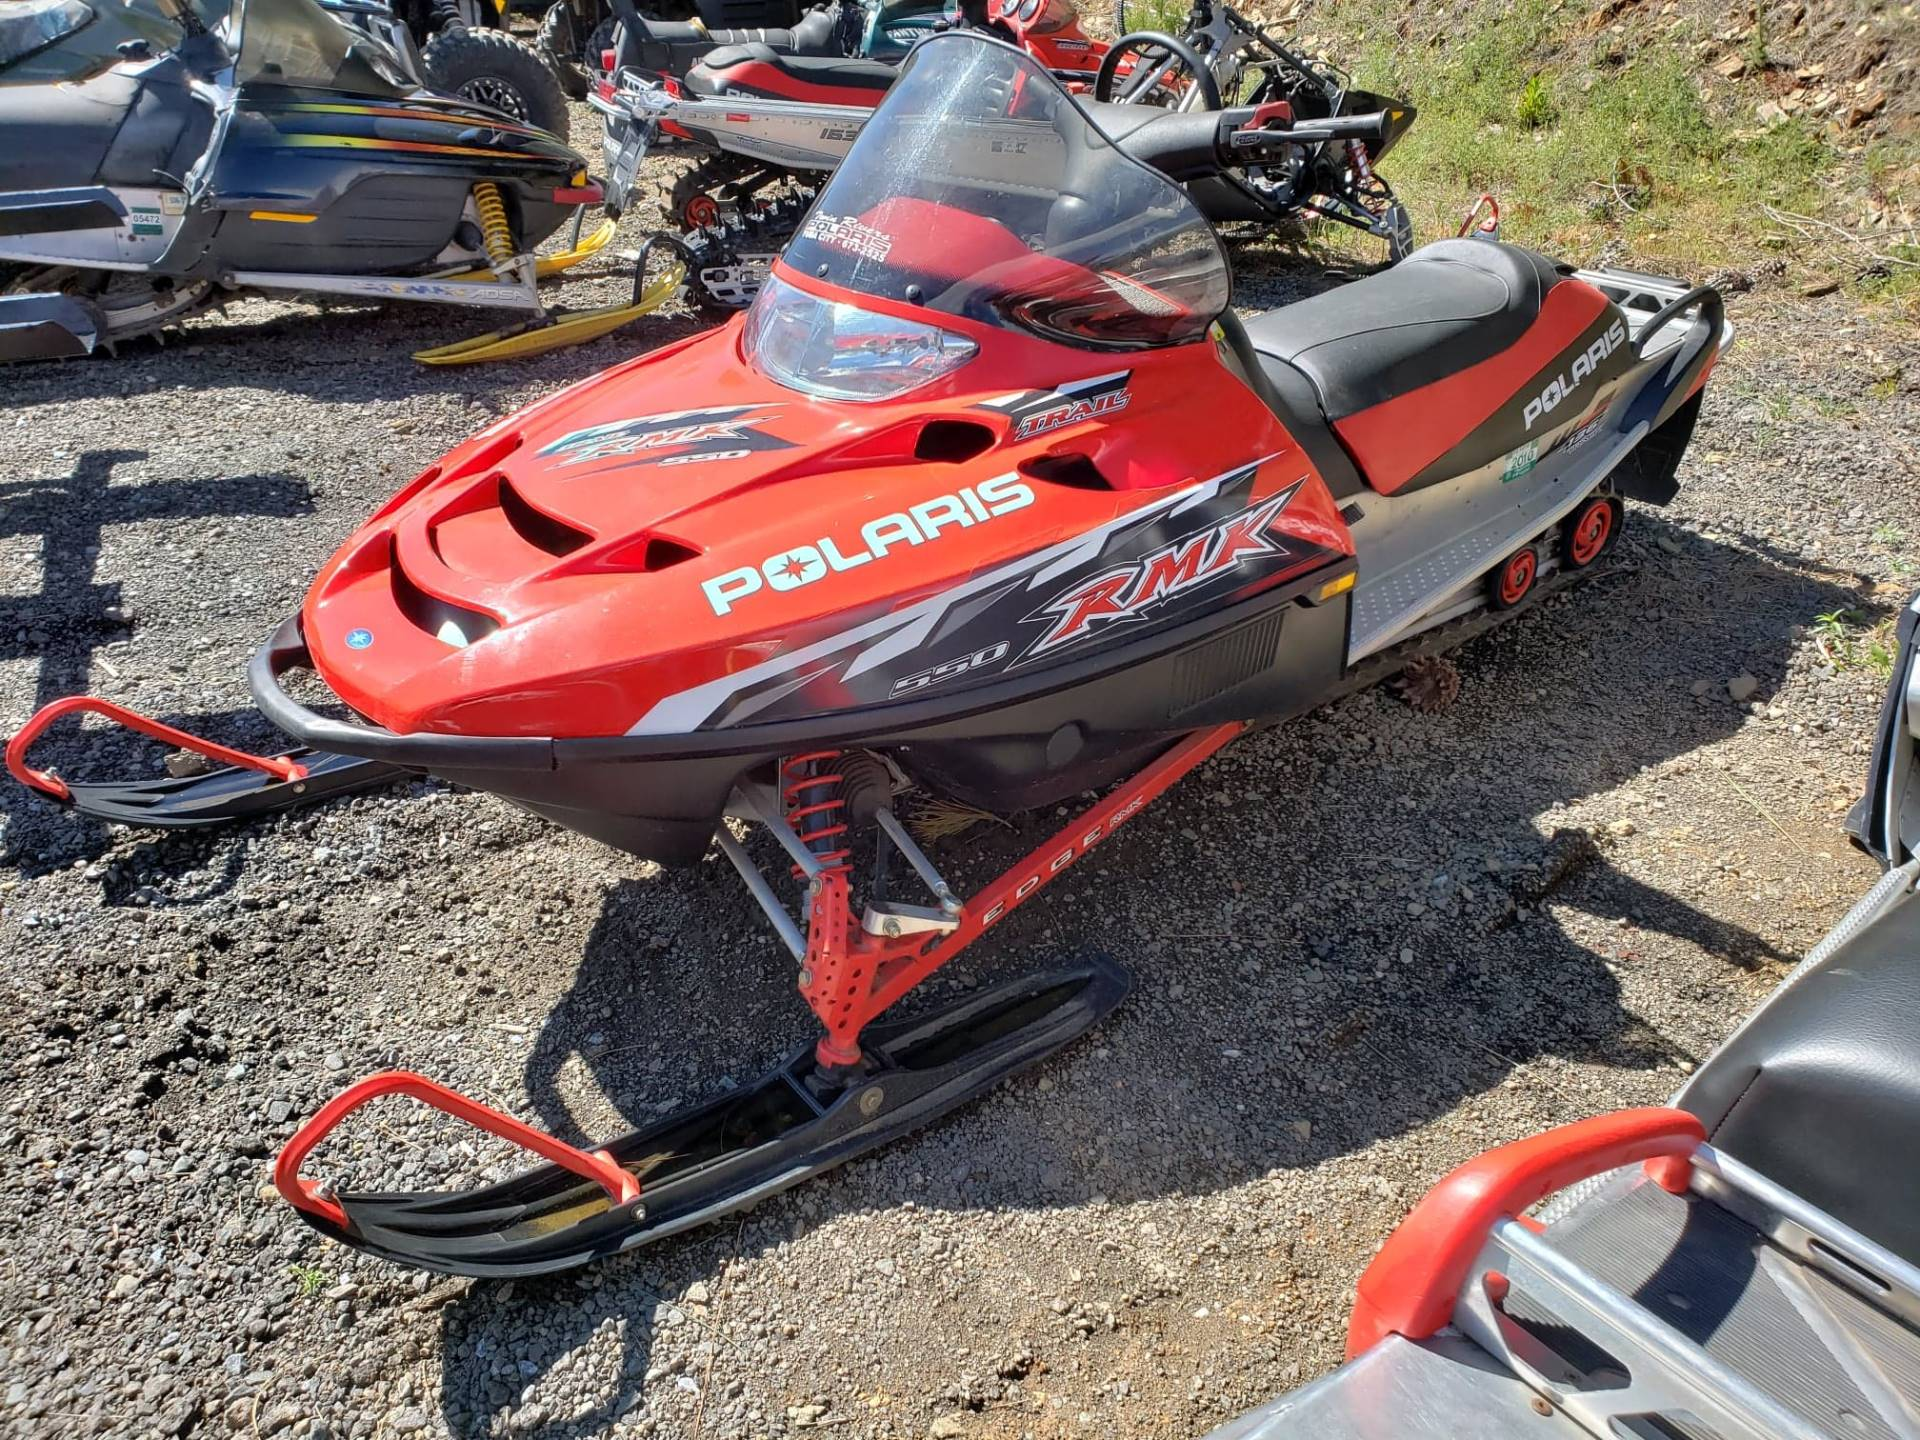 2006 Polaris Trail  RMK in Auburn, California - Photo 6